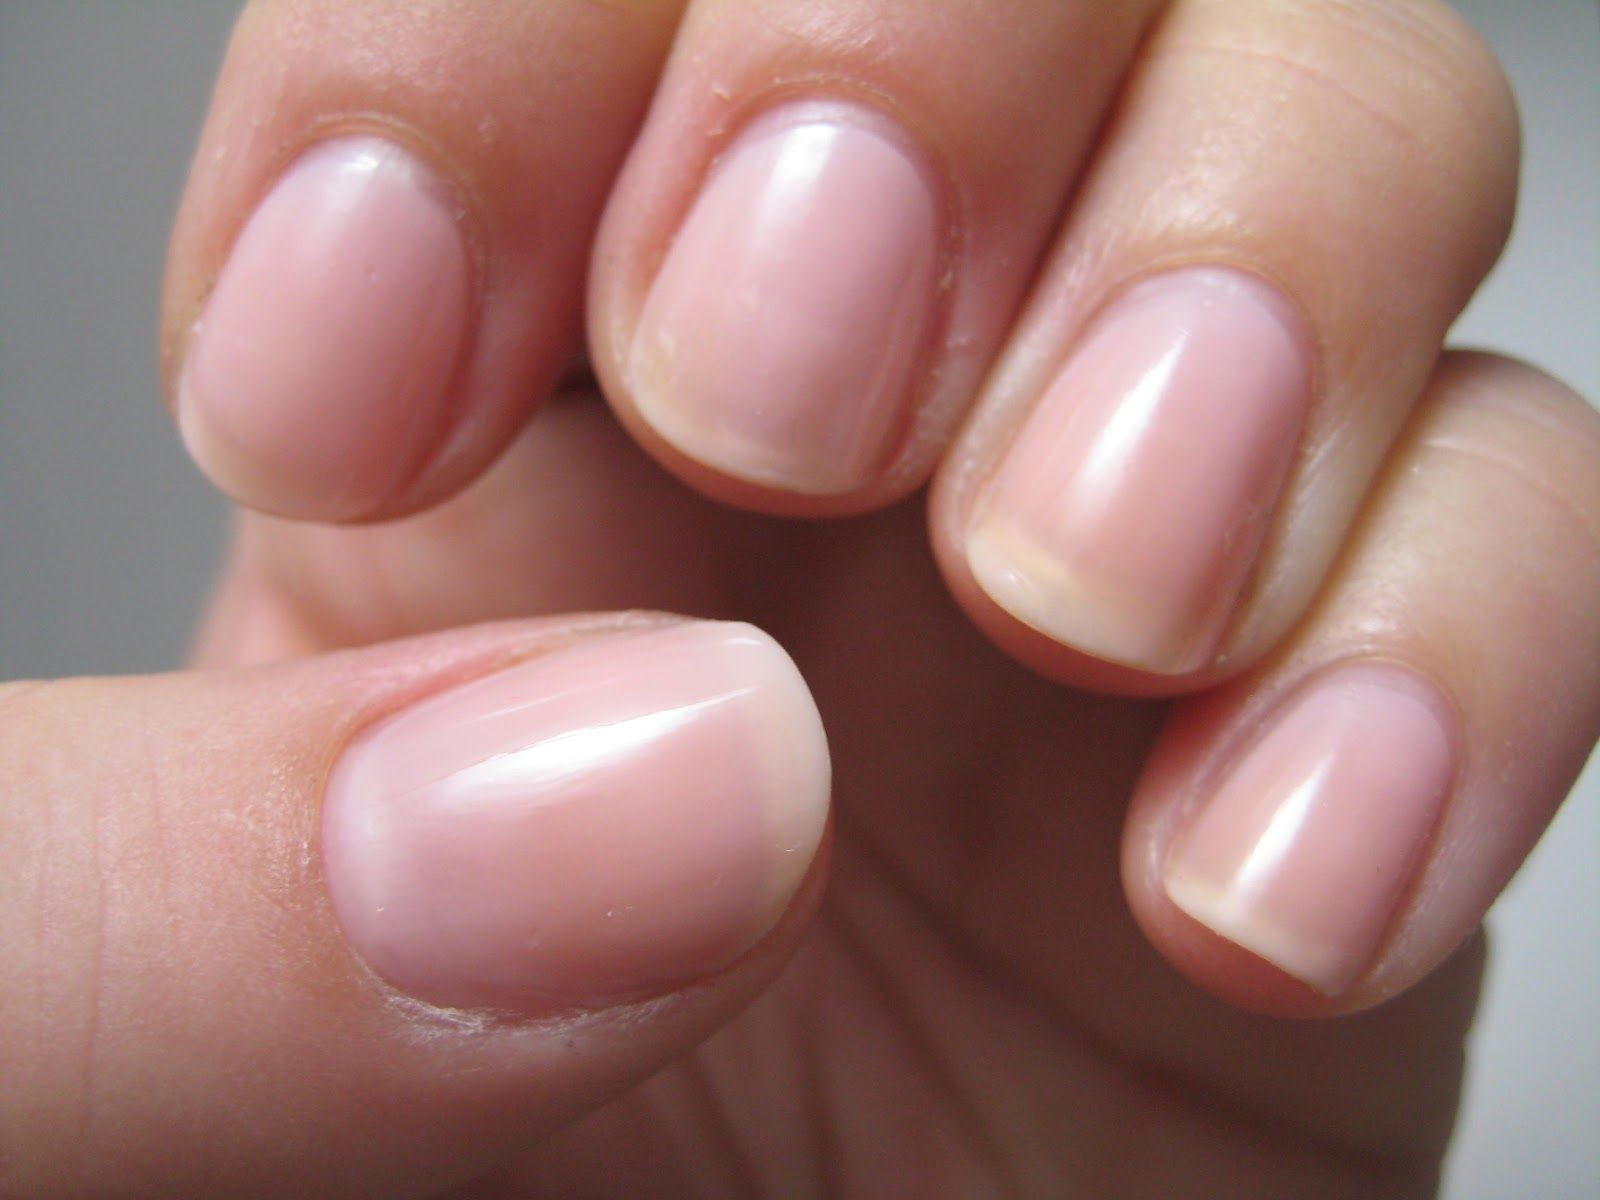 7 Best Dermatologist Tips To Keep Your Nails & Cuticles Looking ...